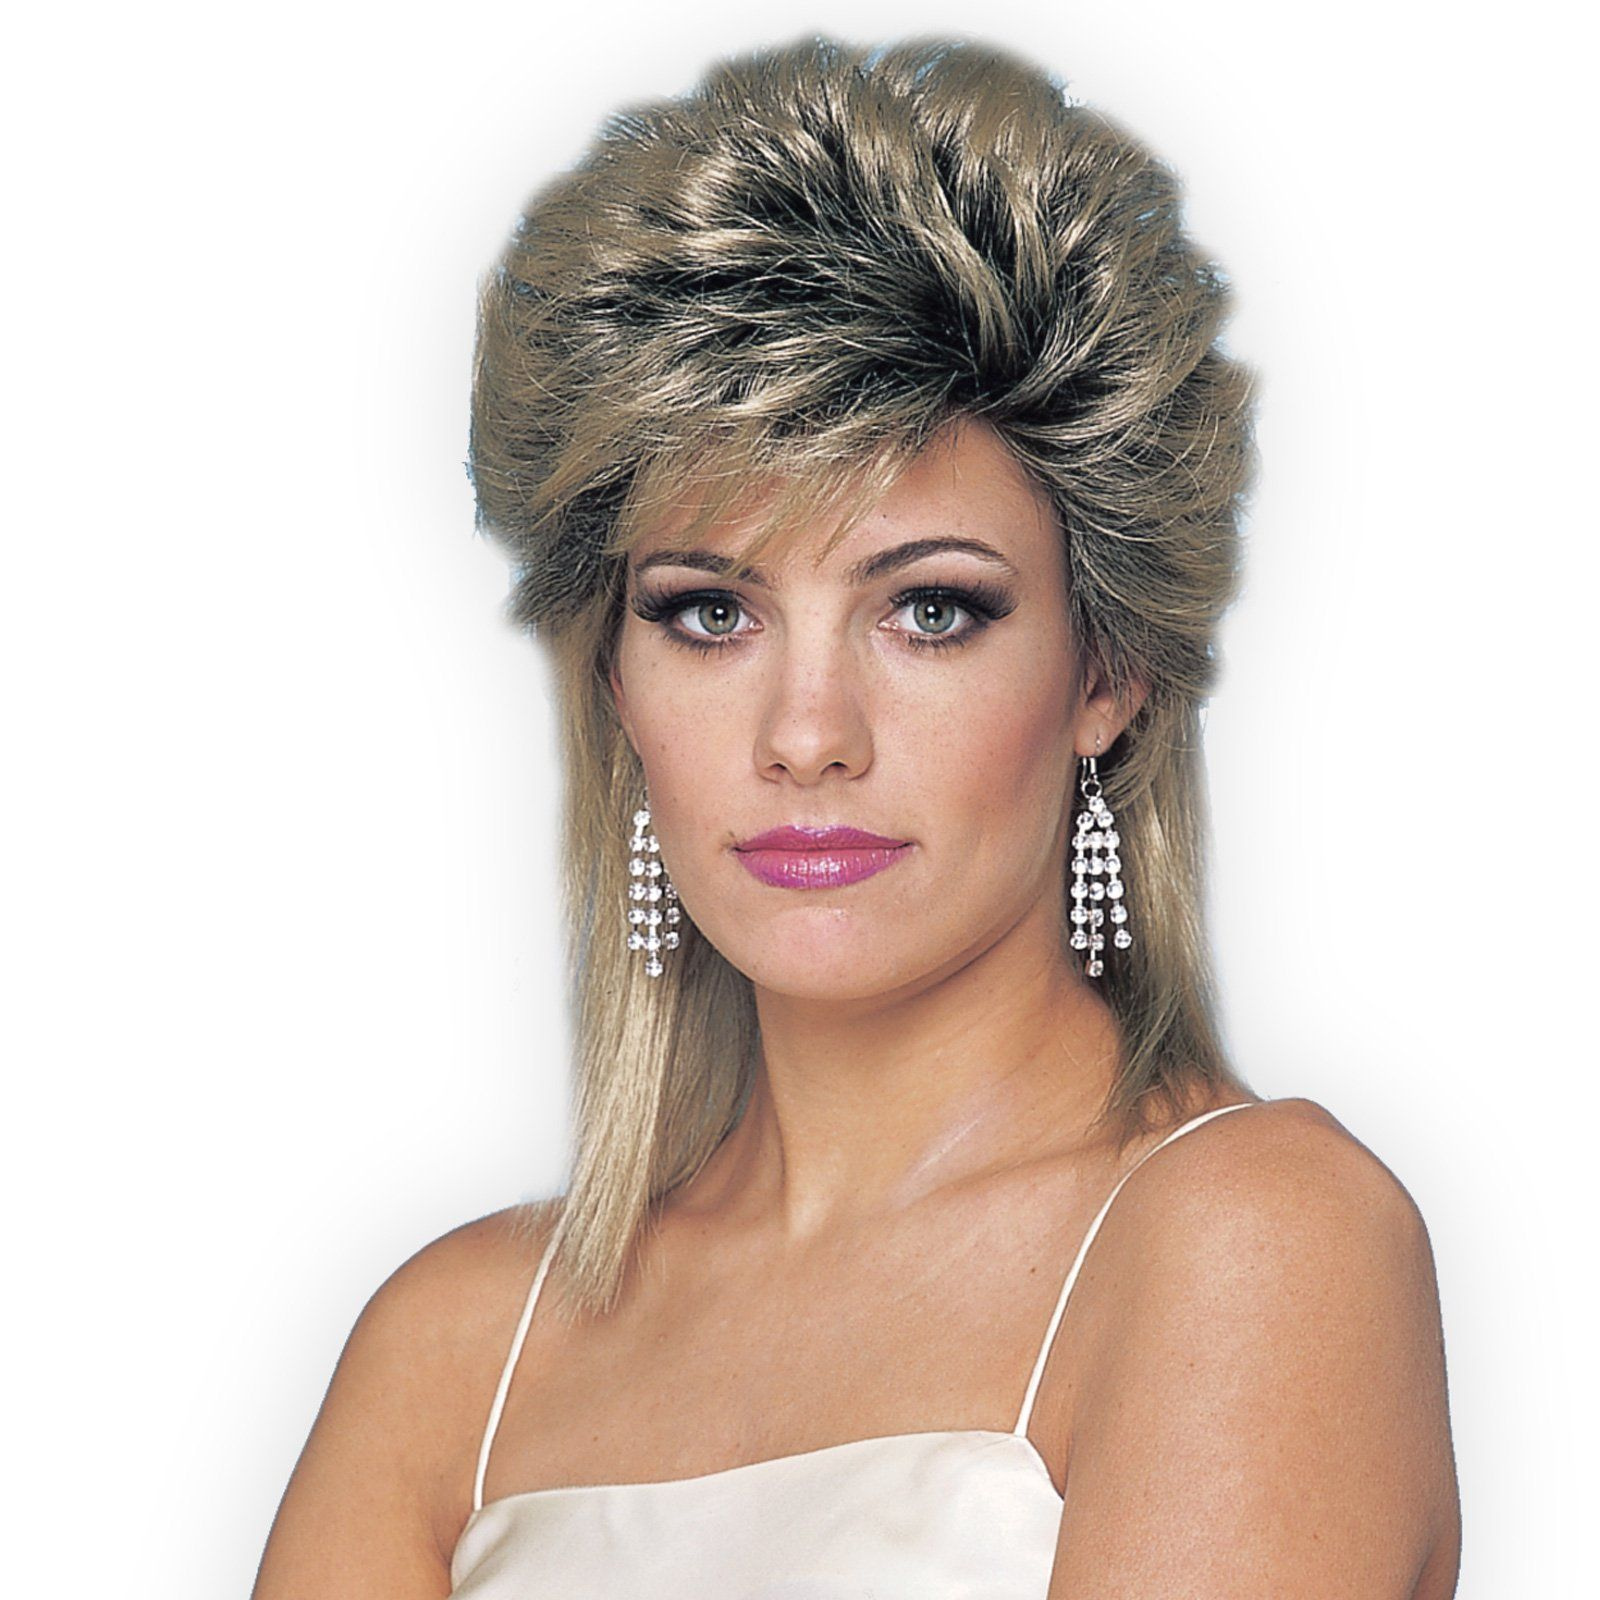 Enjoyable 80S Hairstyles Hairstyles And Mullets On Pinterest Hairstyle Inspiration Daily Dogsangcom